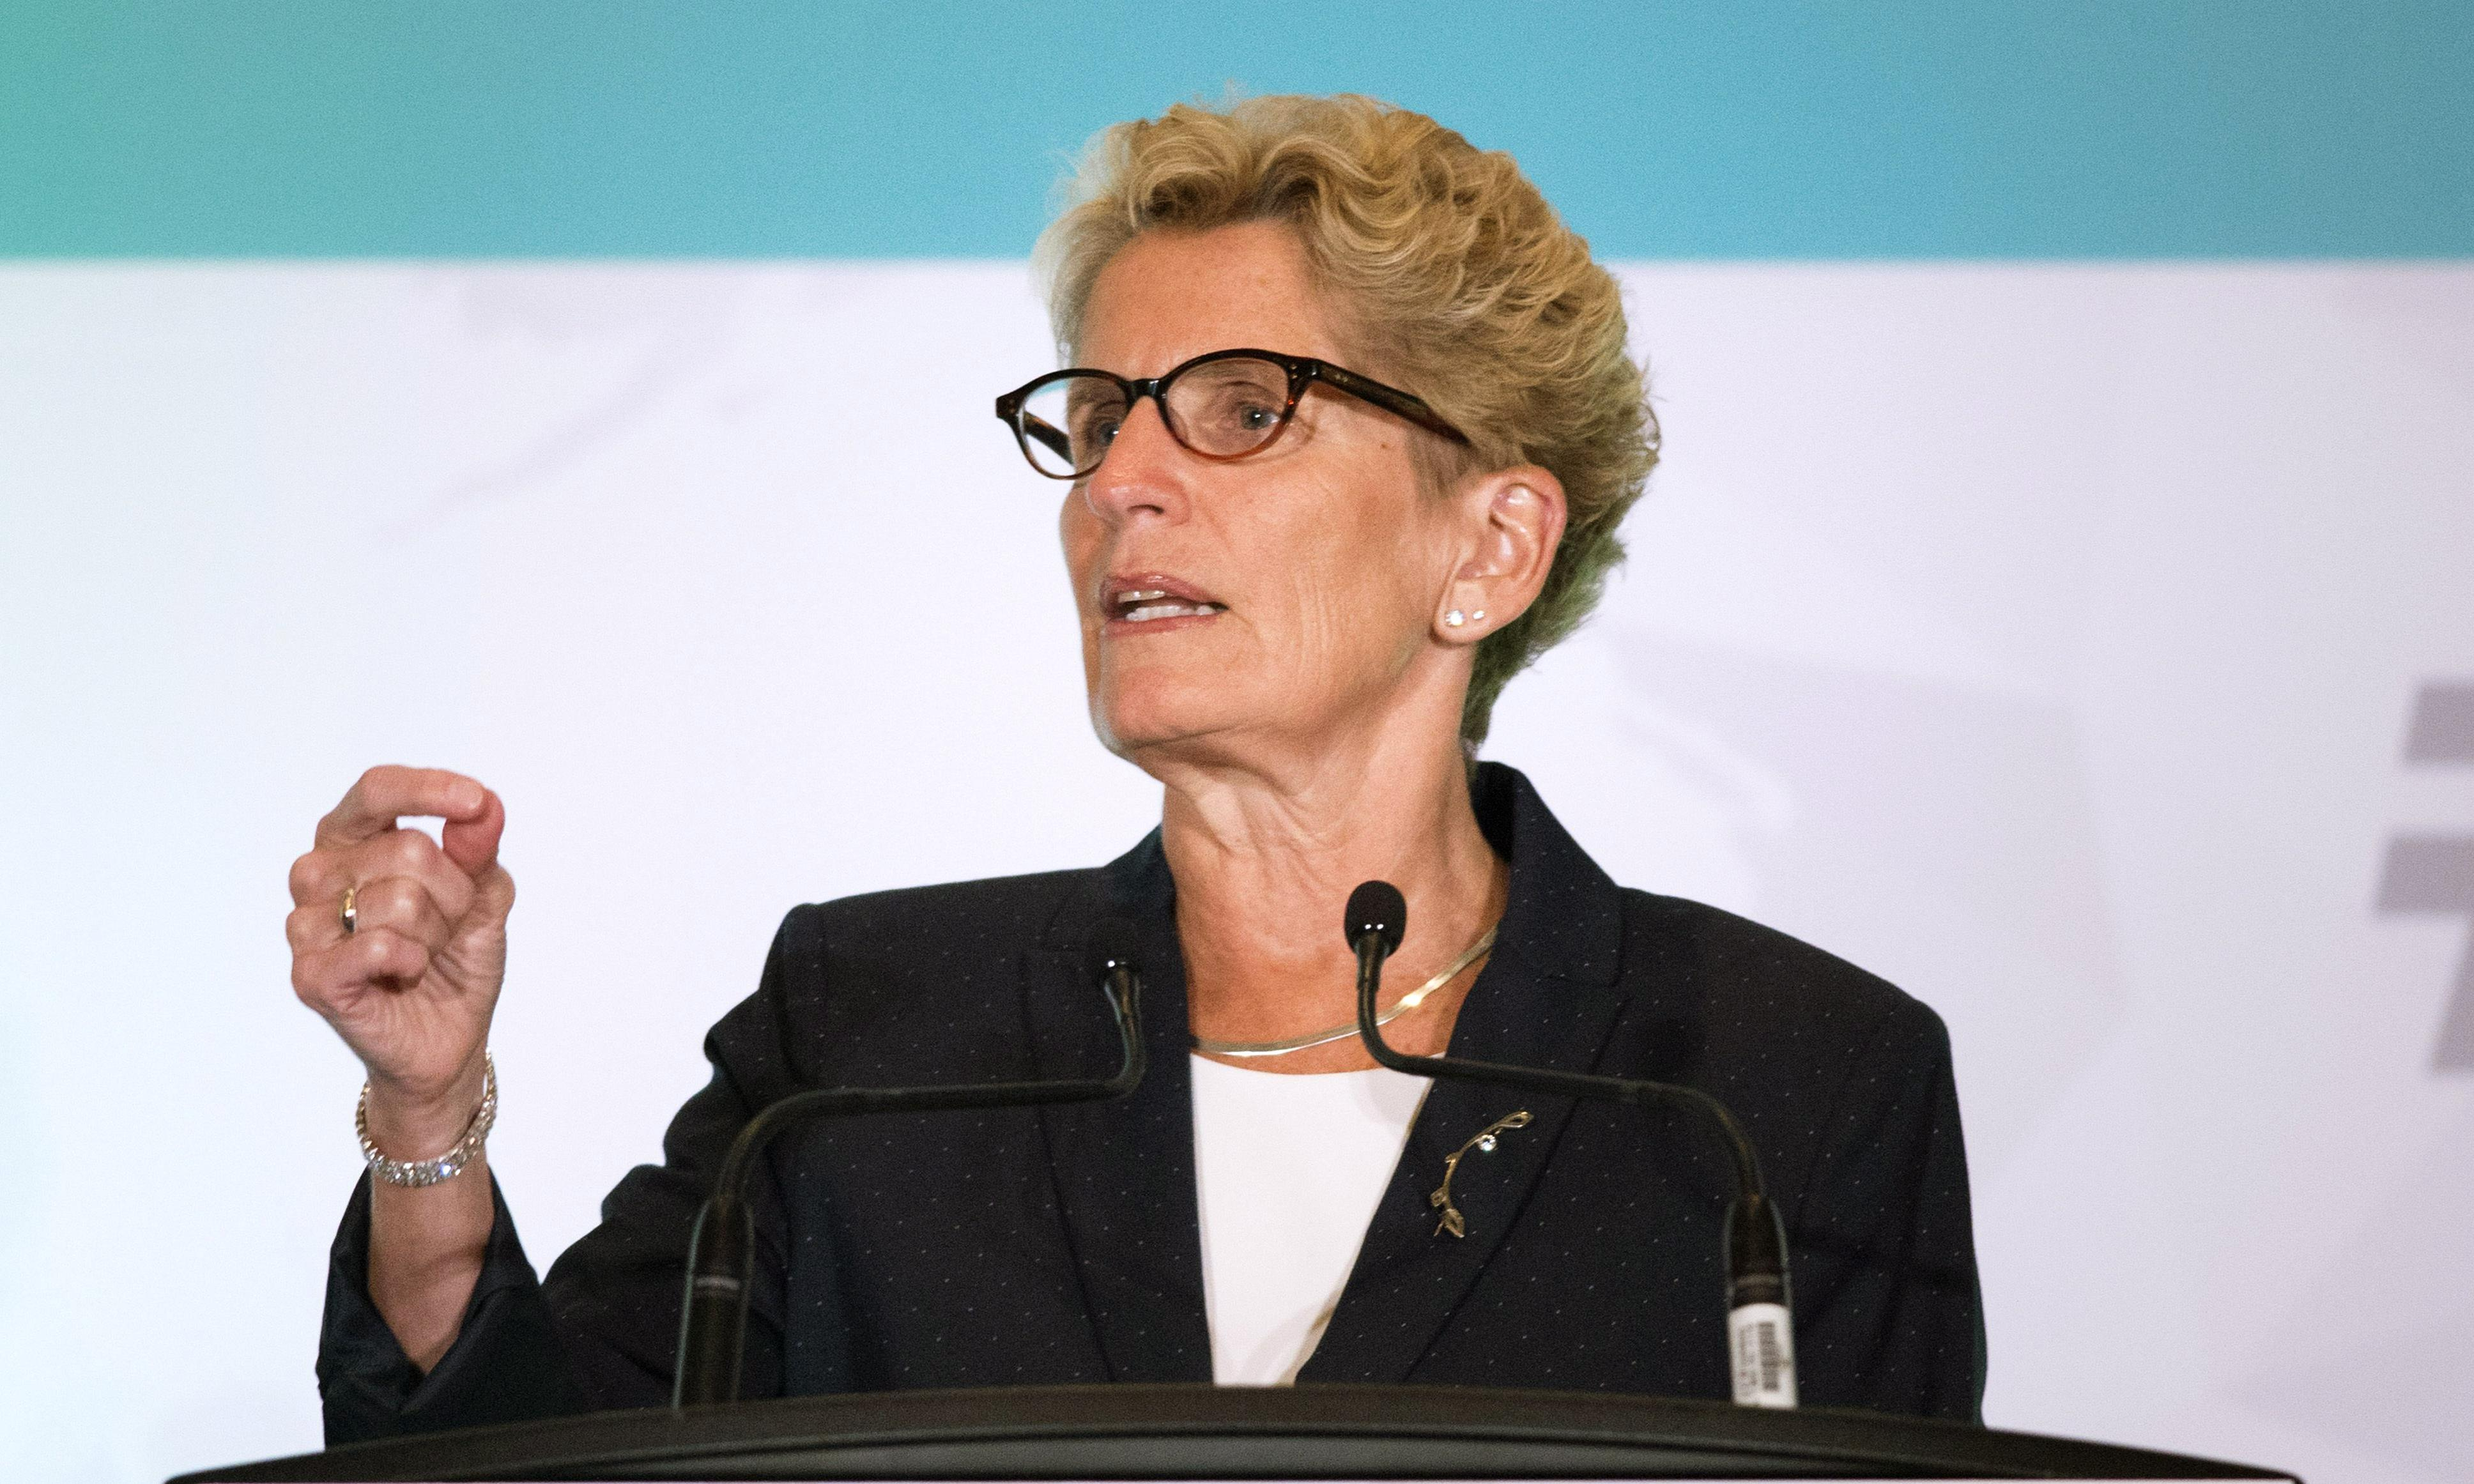 Ontario plans to launch universal basic income trial run this summer